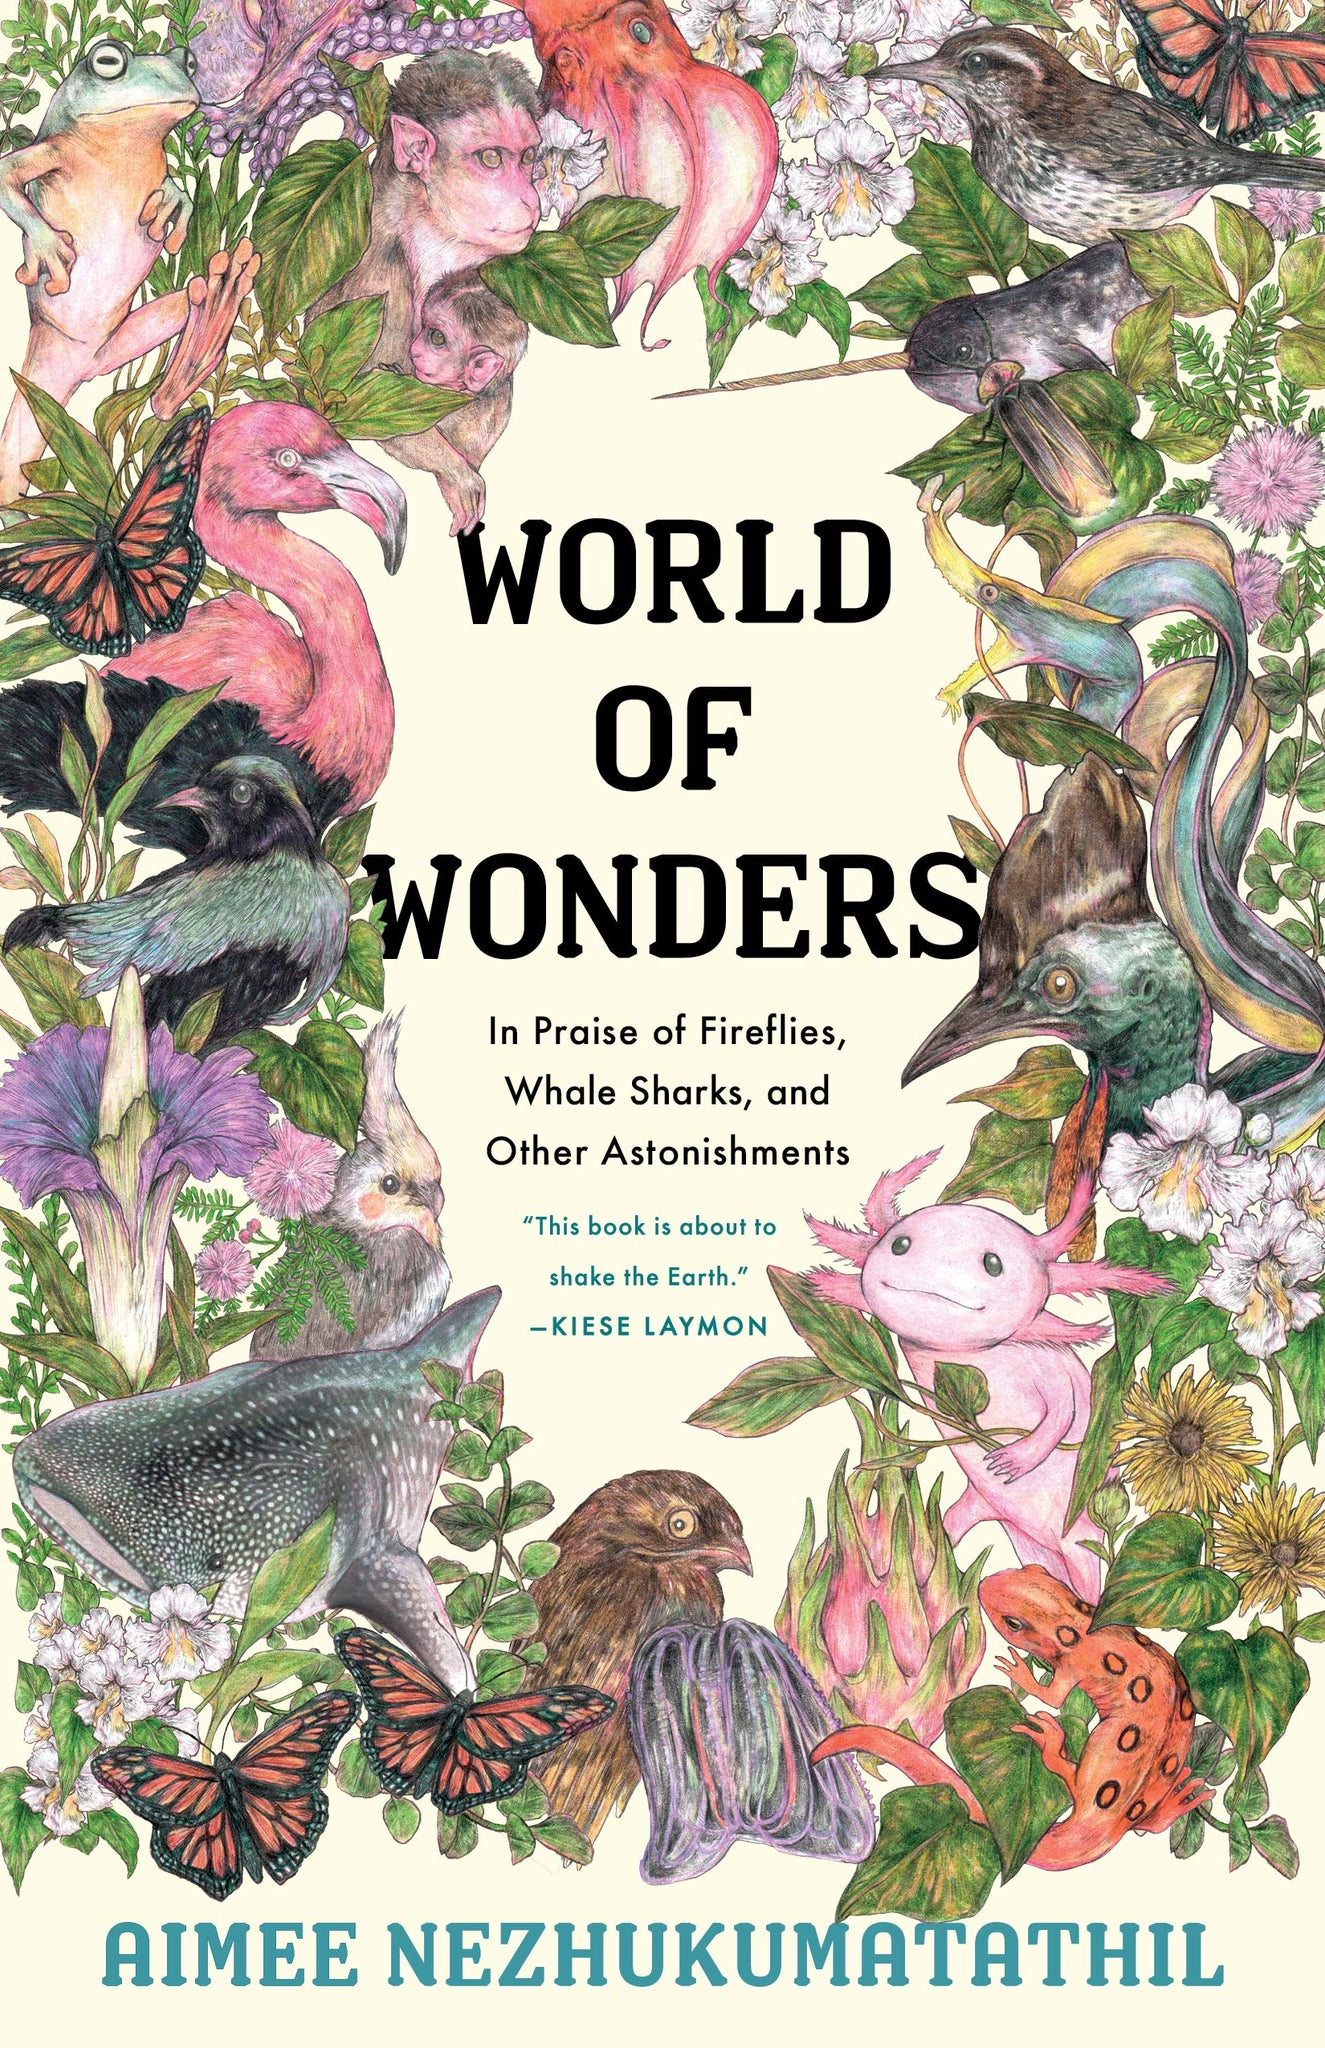 World of Wonders: In Praise of Fireflies, Whale Sharks, and Other Astonishments (Hardcover)